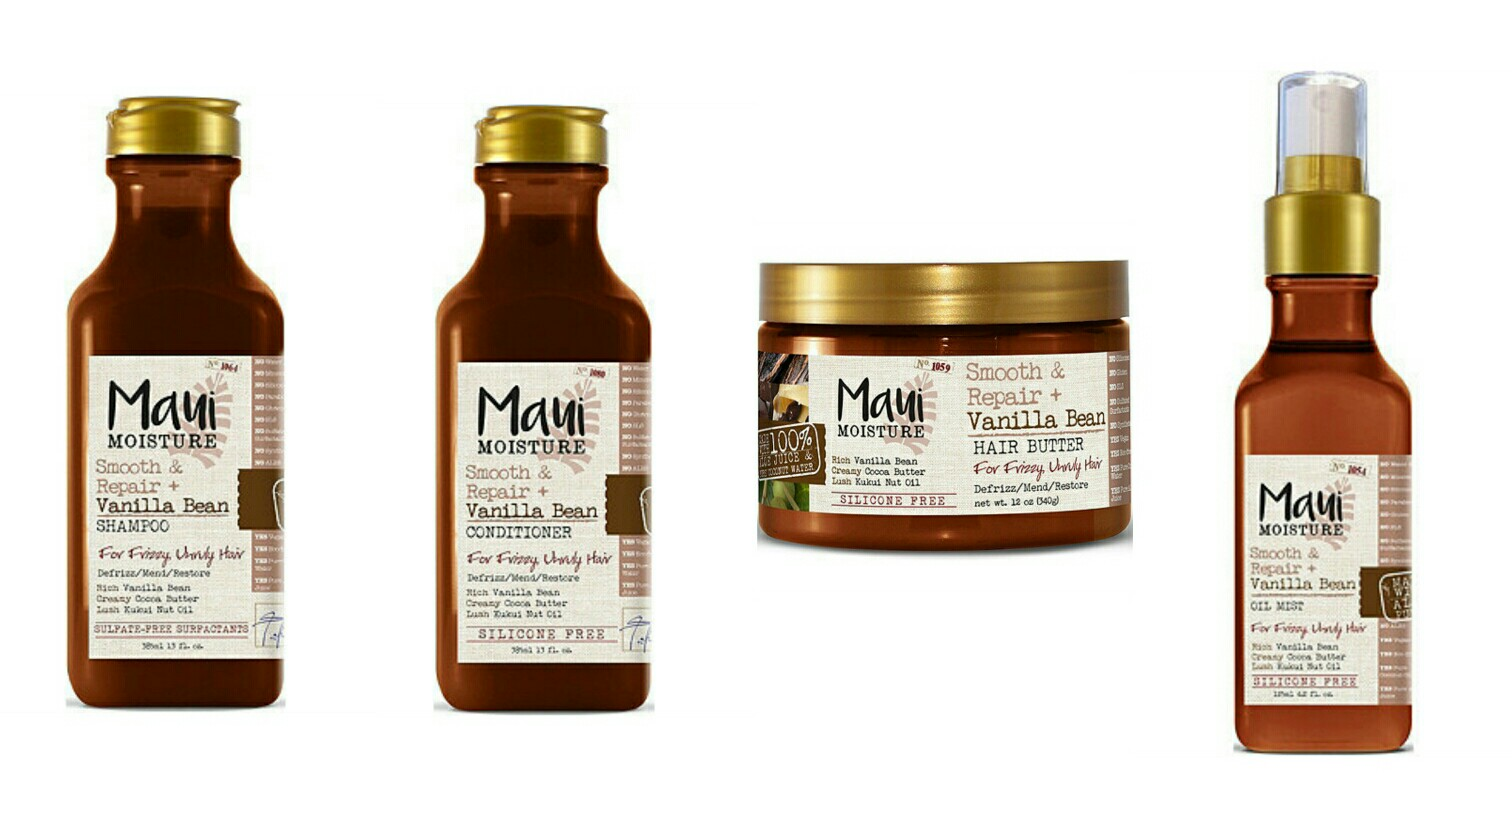 New Haircare Brand Maui Moisture The Budget Beauty Blog